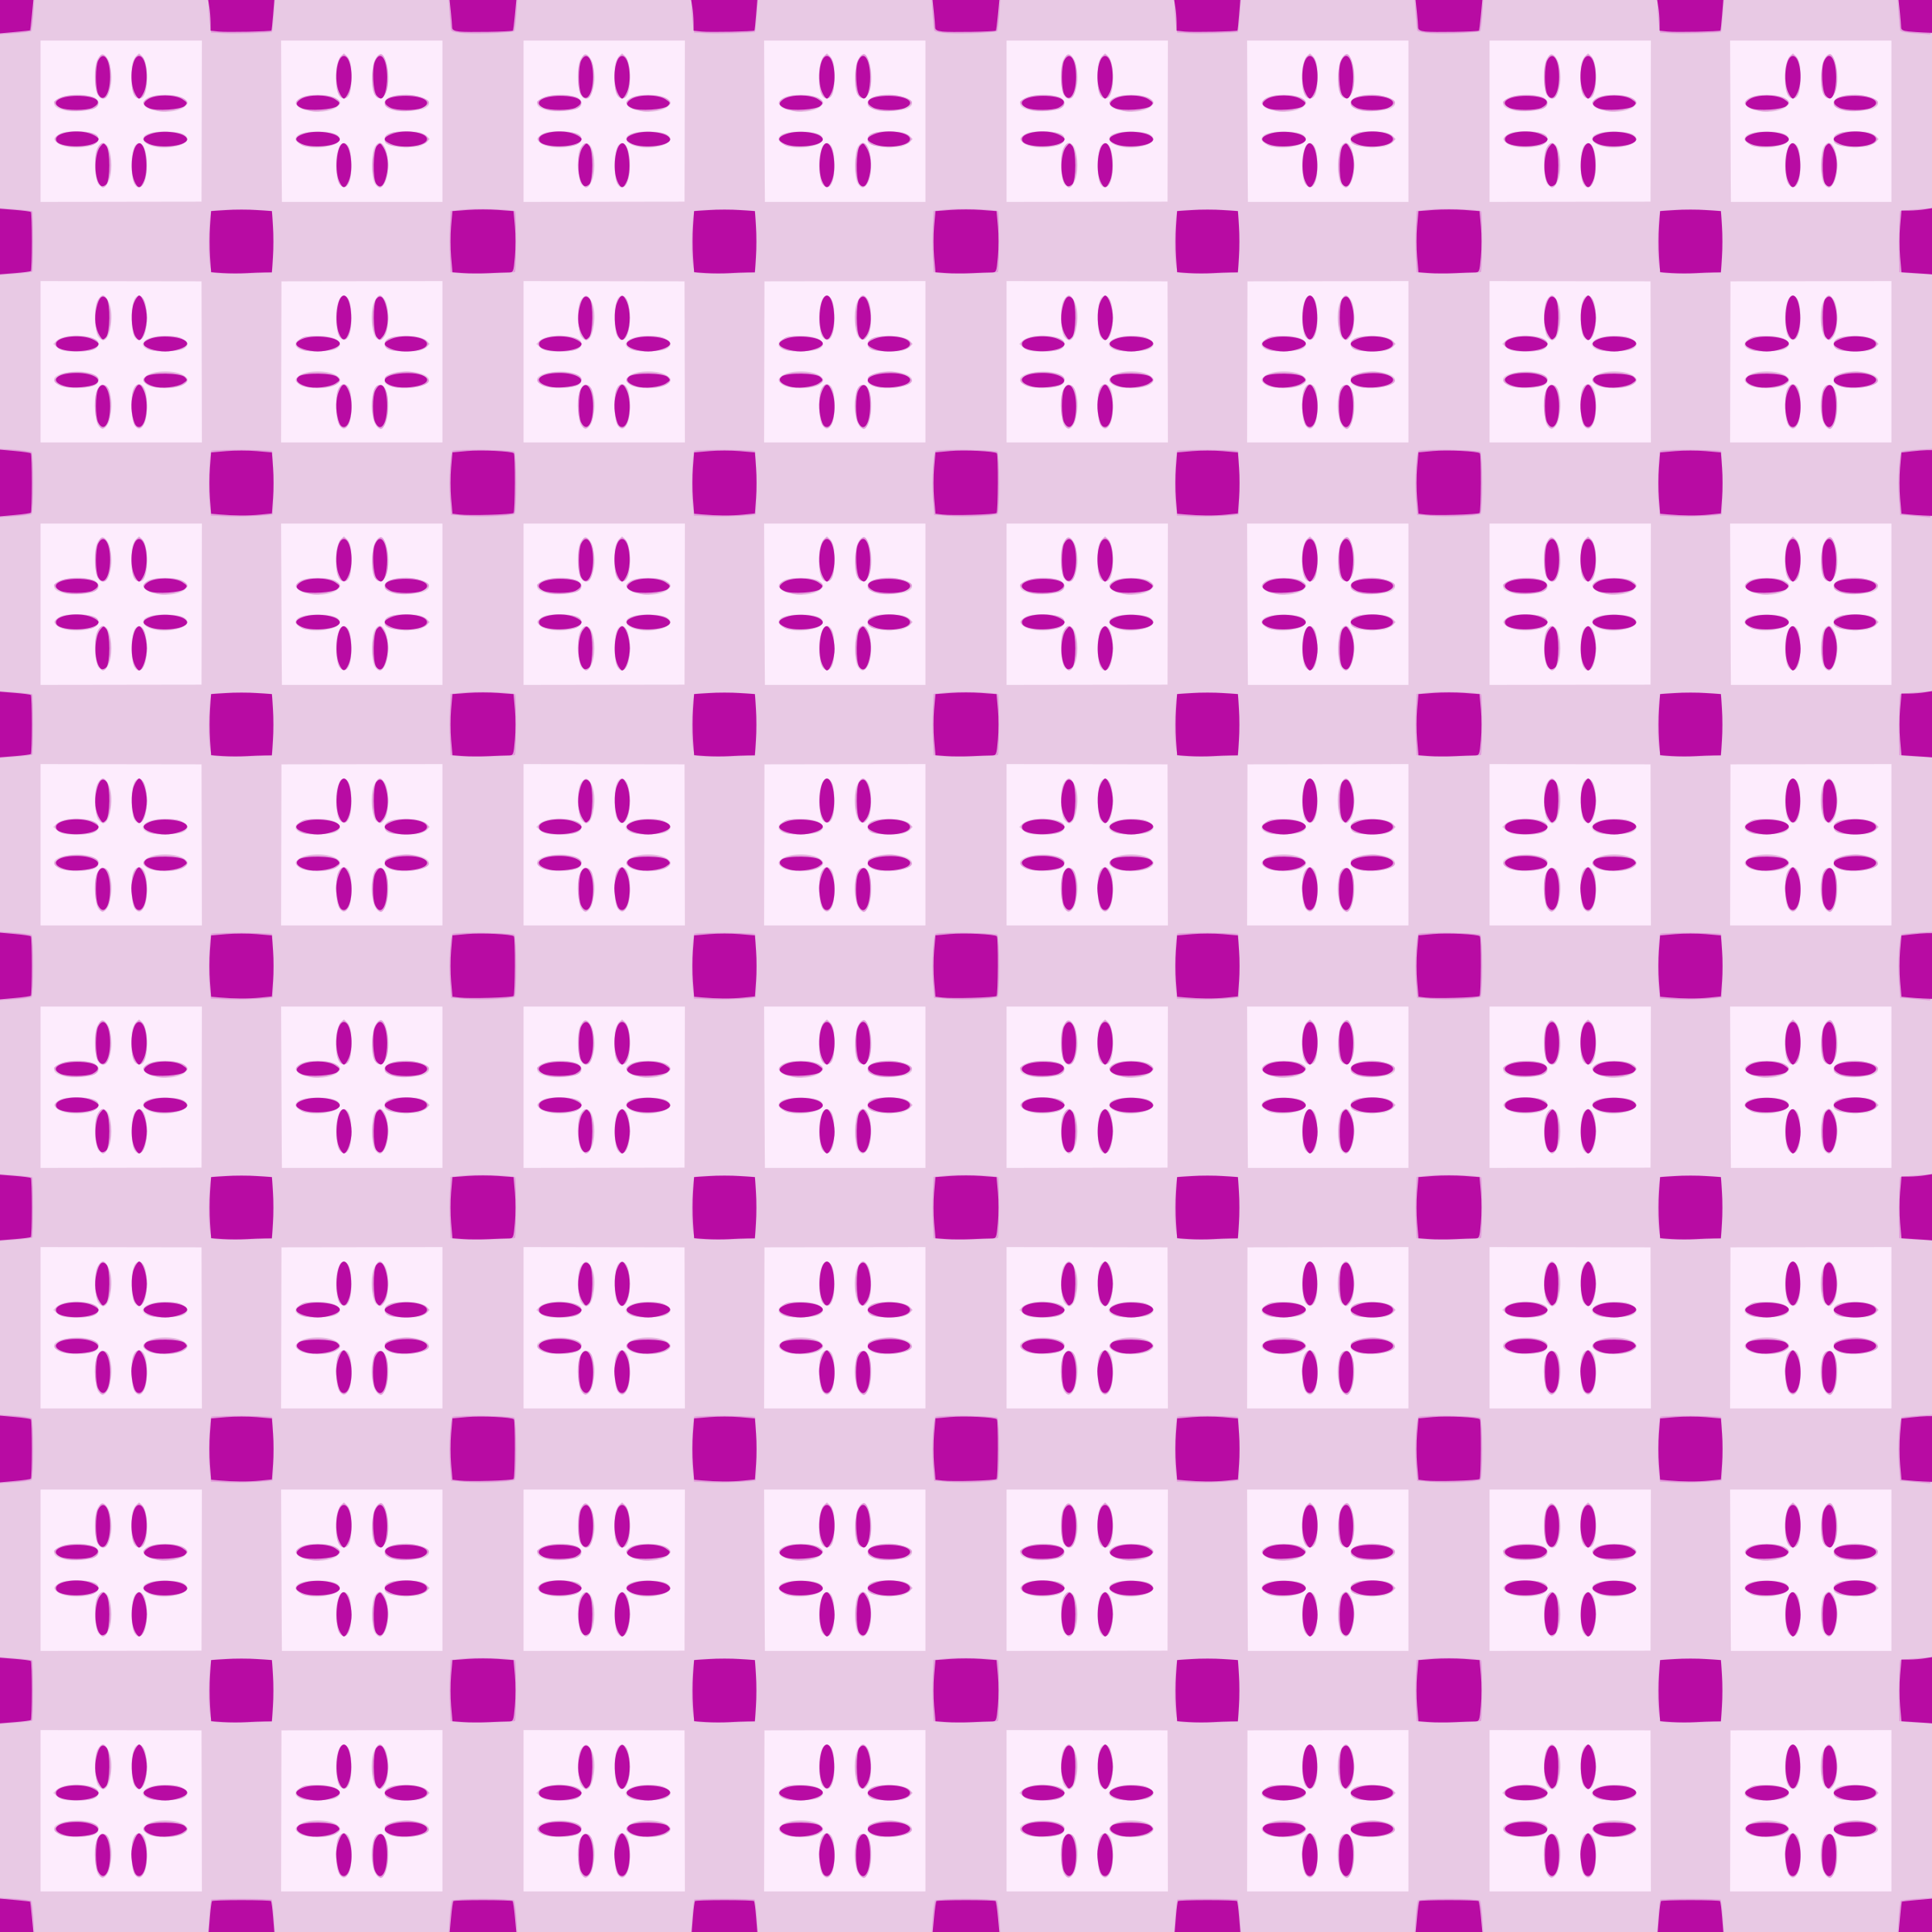 Background pattern 6 by Firkin